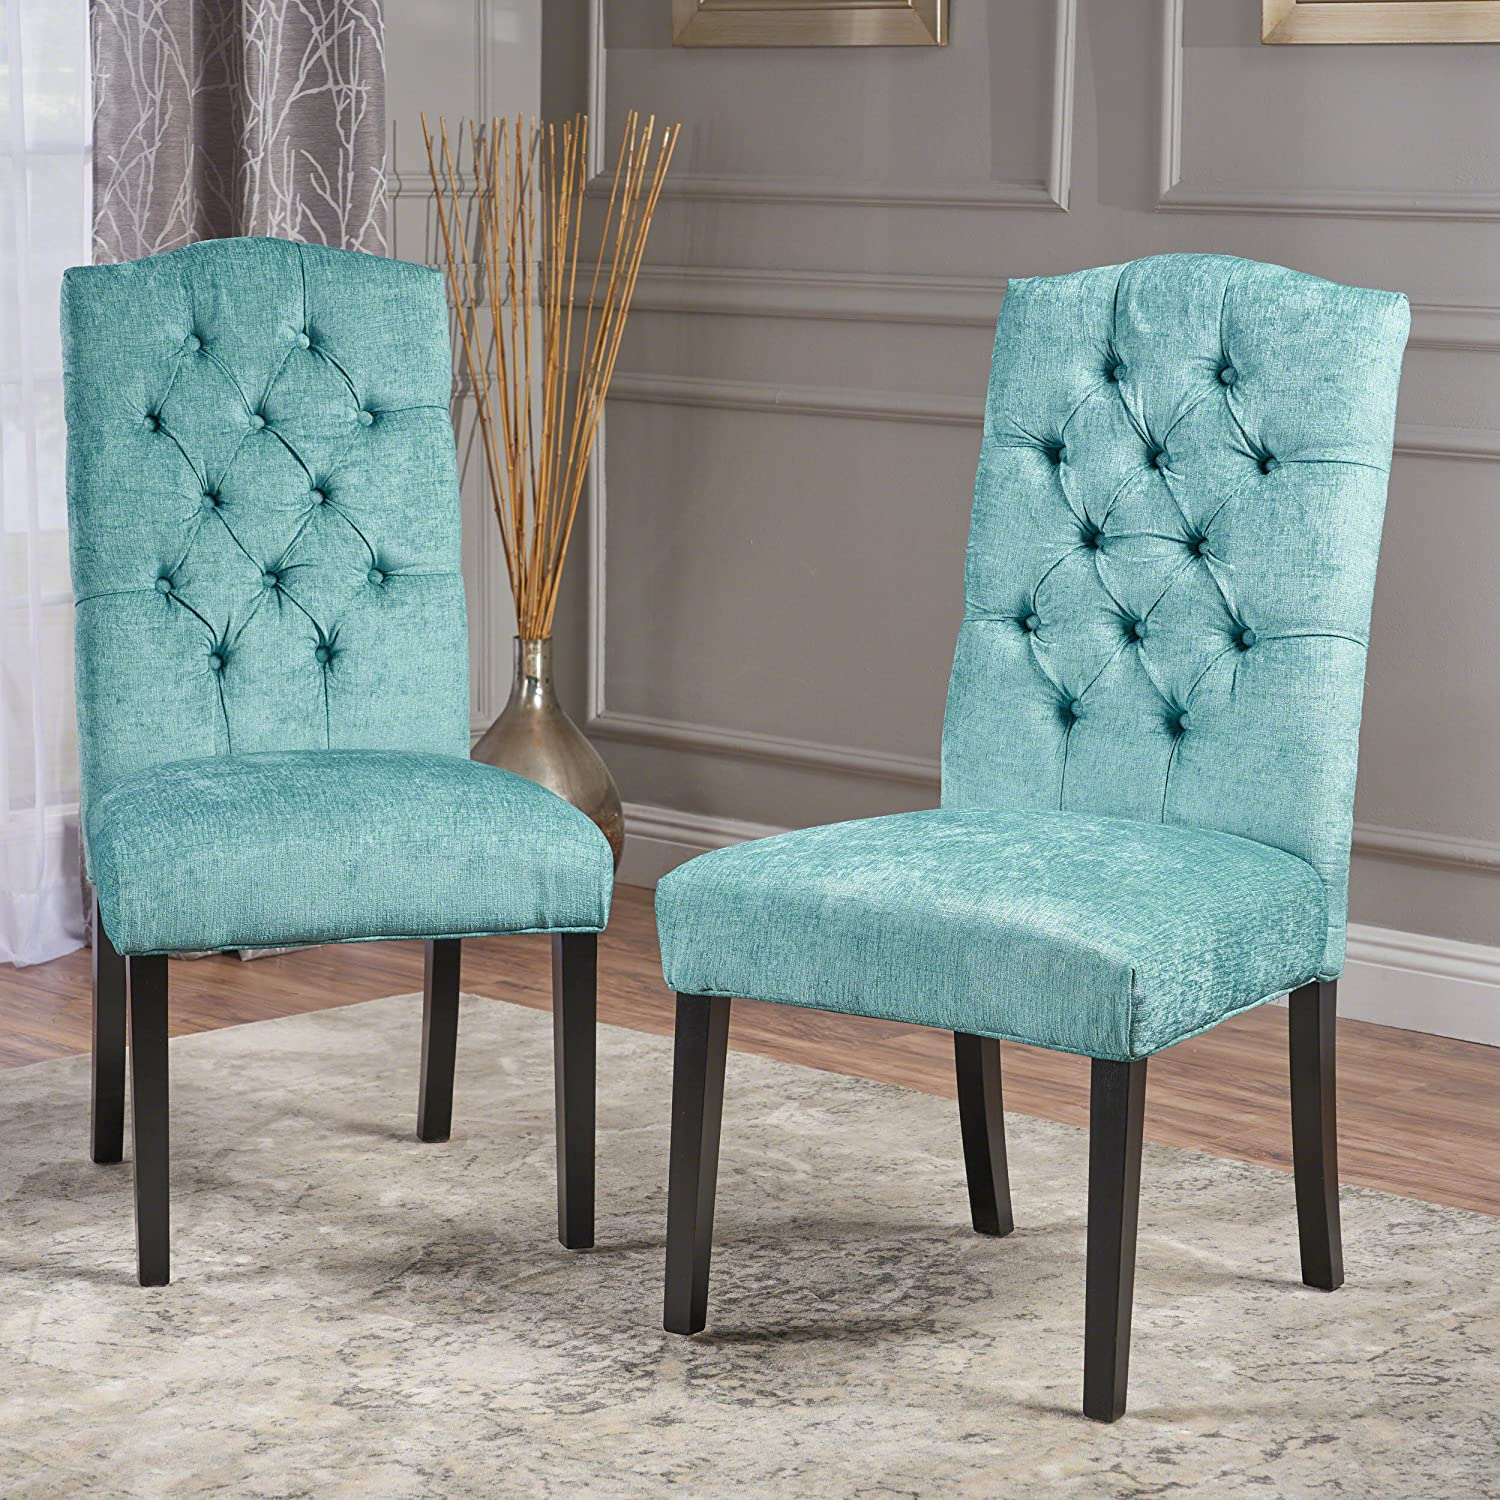 Christopher Knight Home 295077 Crown Top Dining Chair, Light Teal